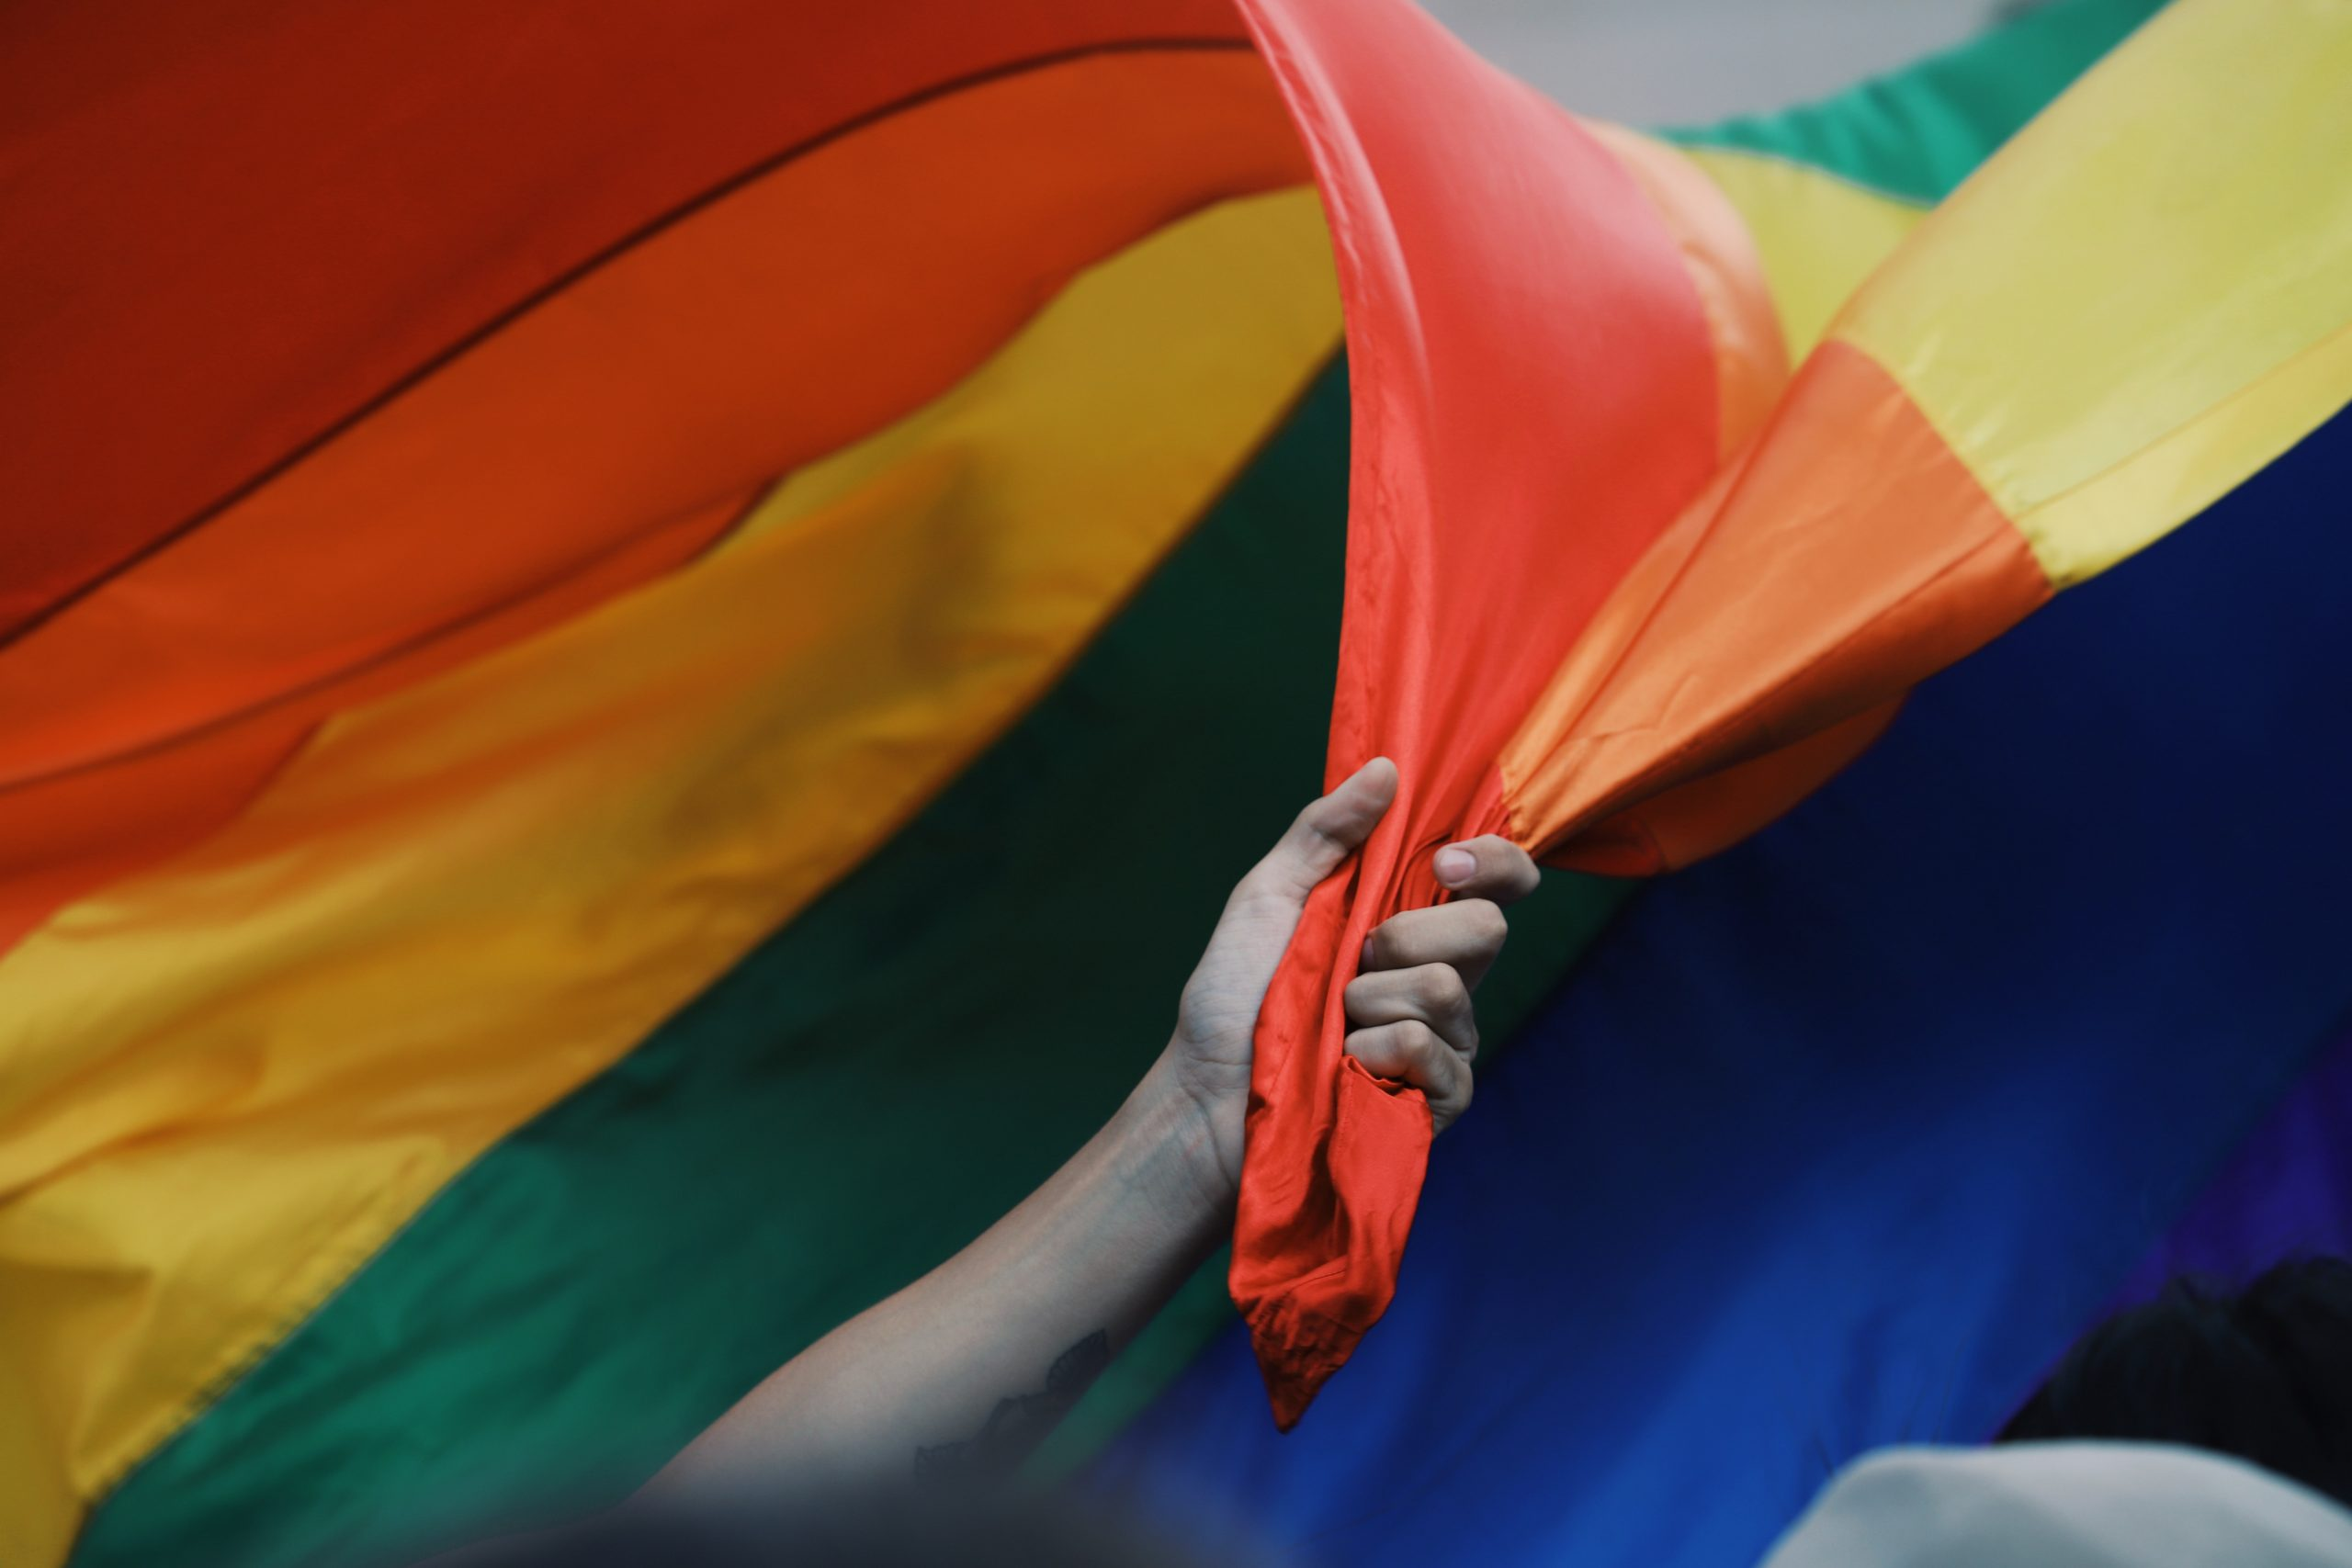 A closed fist grabs the corner of a rainbow Pride flag. The flag is swept up in a gust of wind and takes up the whole frame.